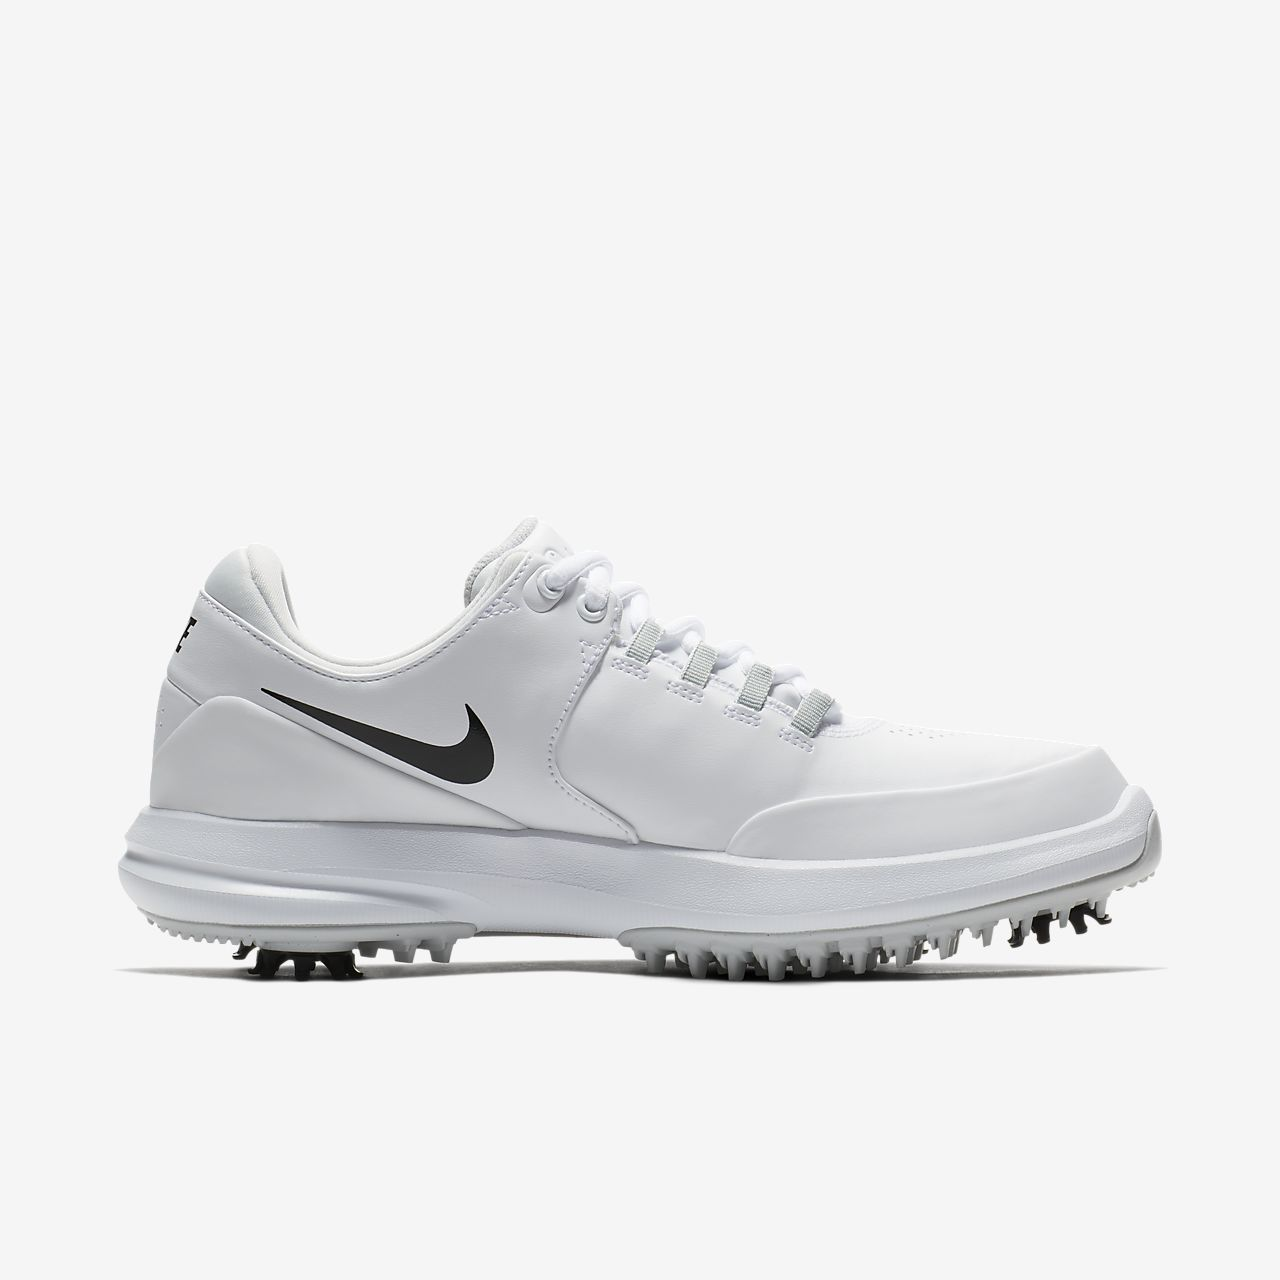 NIKE Womens Nike Air Zoom Accurate 909734-002 PURE PLATINUM Size 6.5